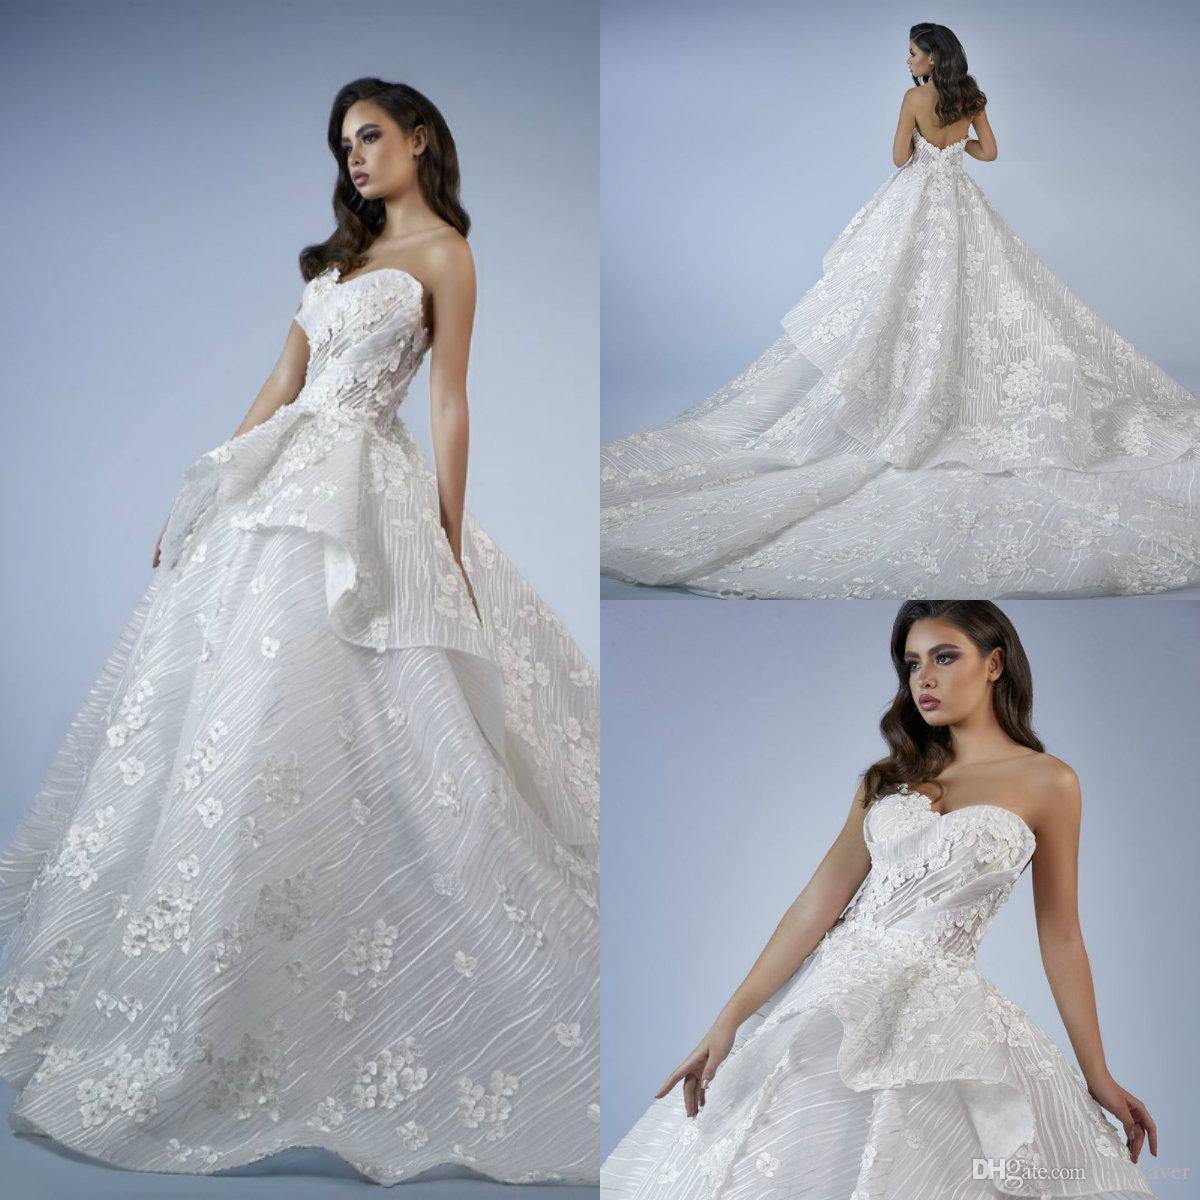 Tony Chaaya Wedding Dresses Lace 3D Floral Appliqued Sweetheart A Line Court Train Country Bridal Dress Custom Made Luxury Wedding Gowns